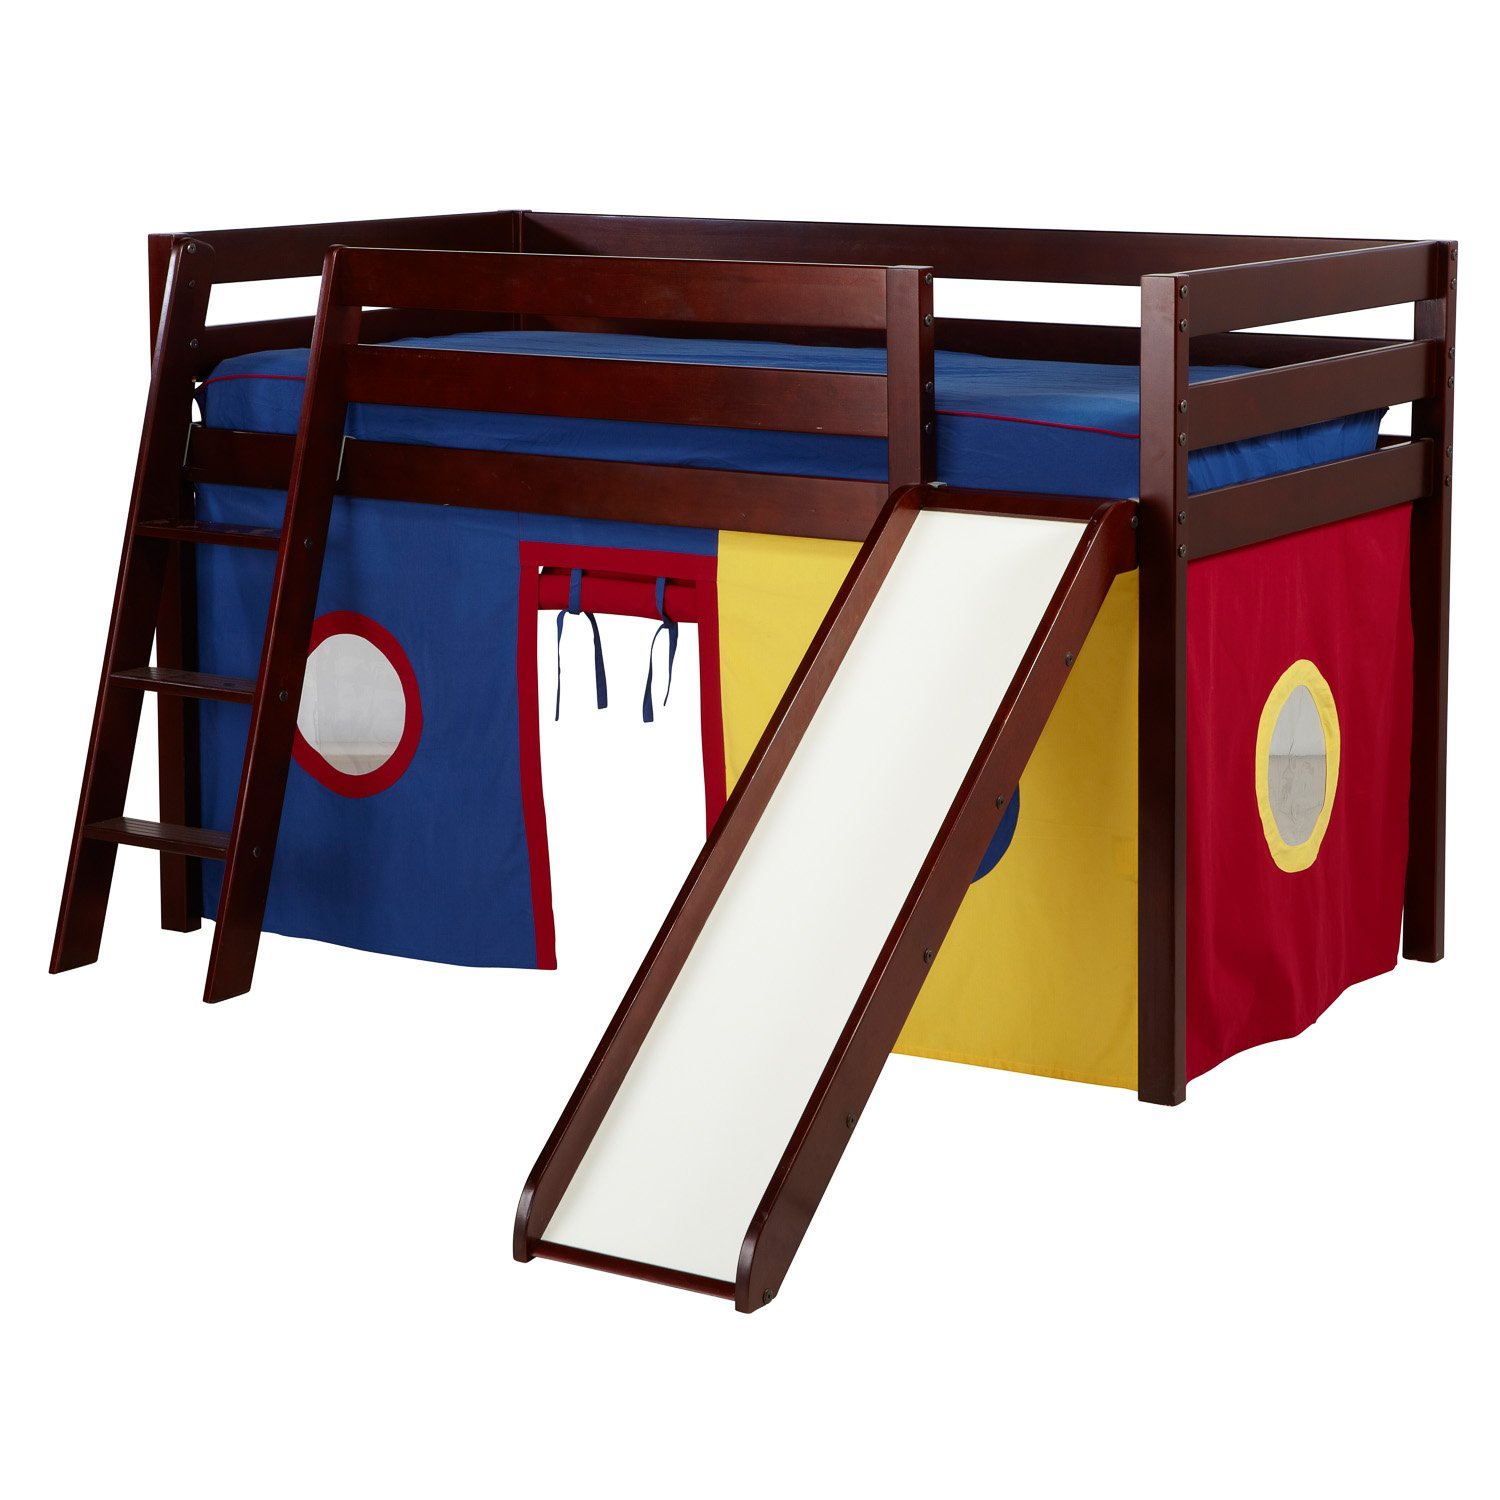 Jackpot! Essentials Low Loft Play Bed with Slide, Angled Ladder,and Blue/Red/Yellow Curtains, Cherry Finish